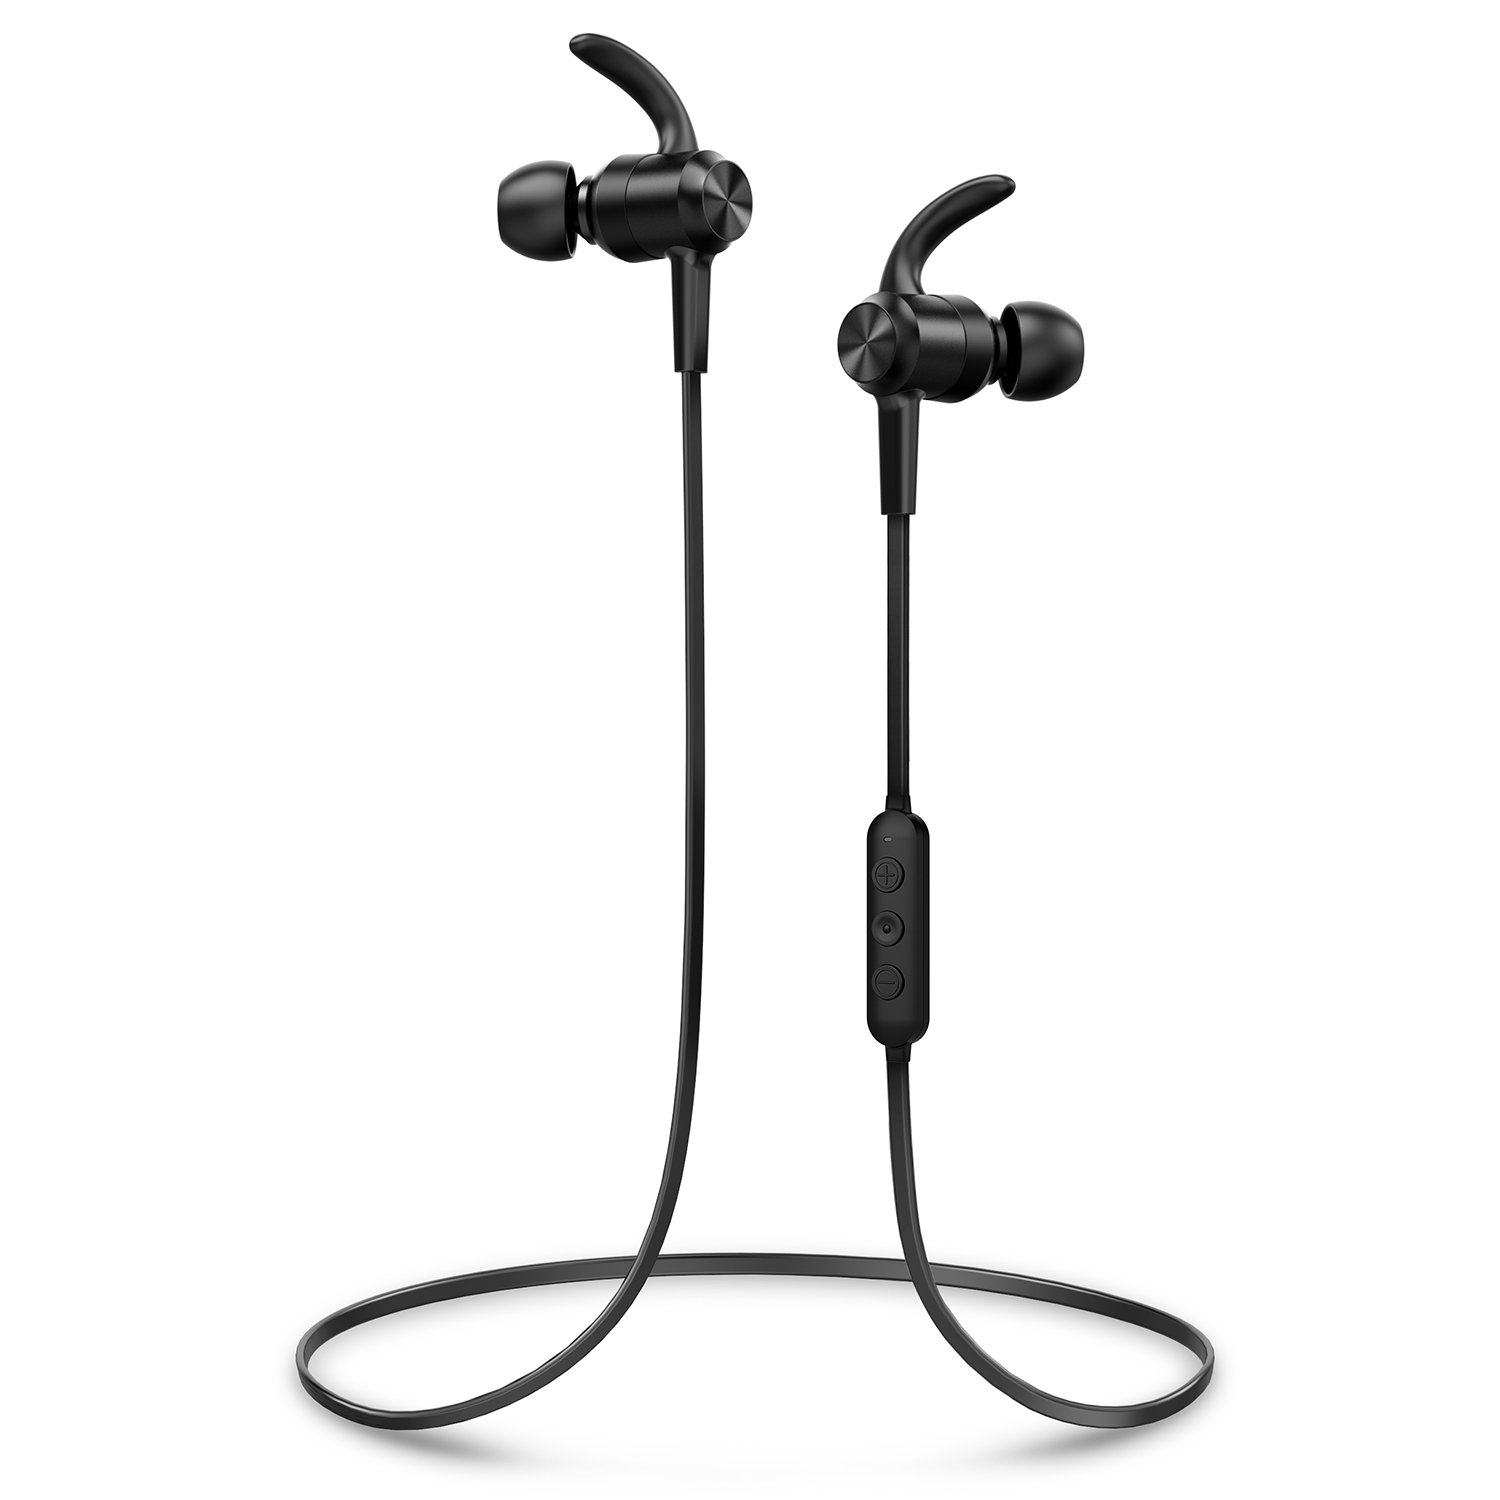 Auriculares Earbuds Inalambricos Picun Waterproof IPX7 Black